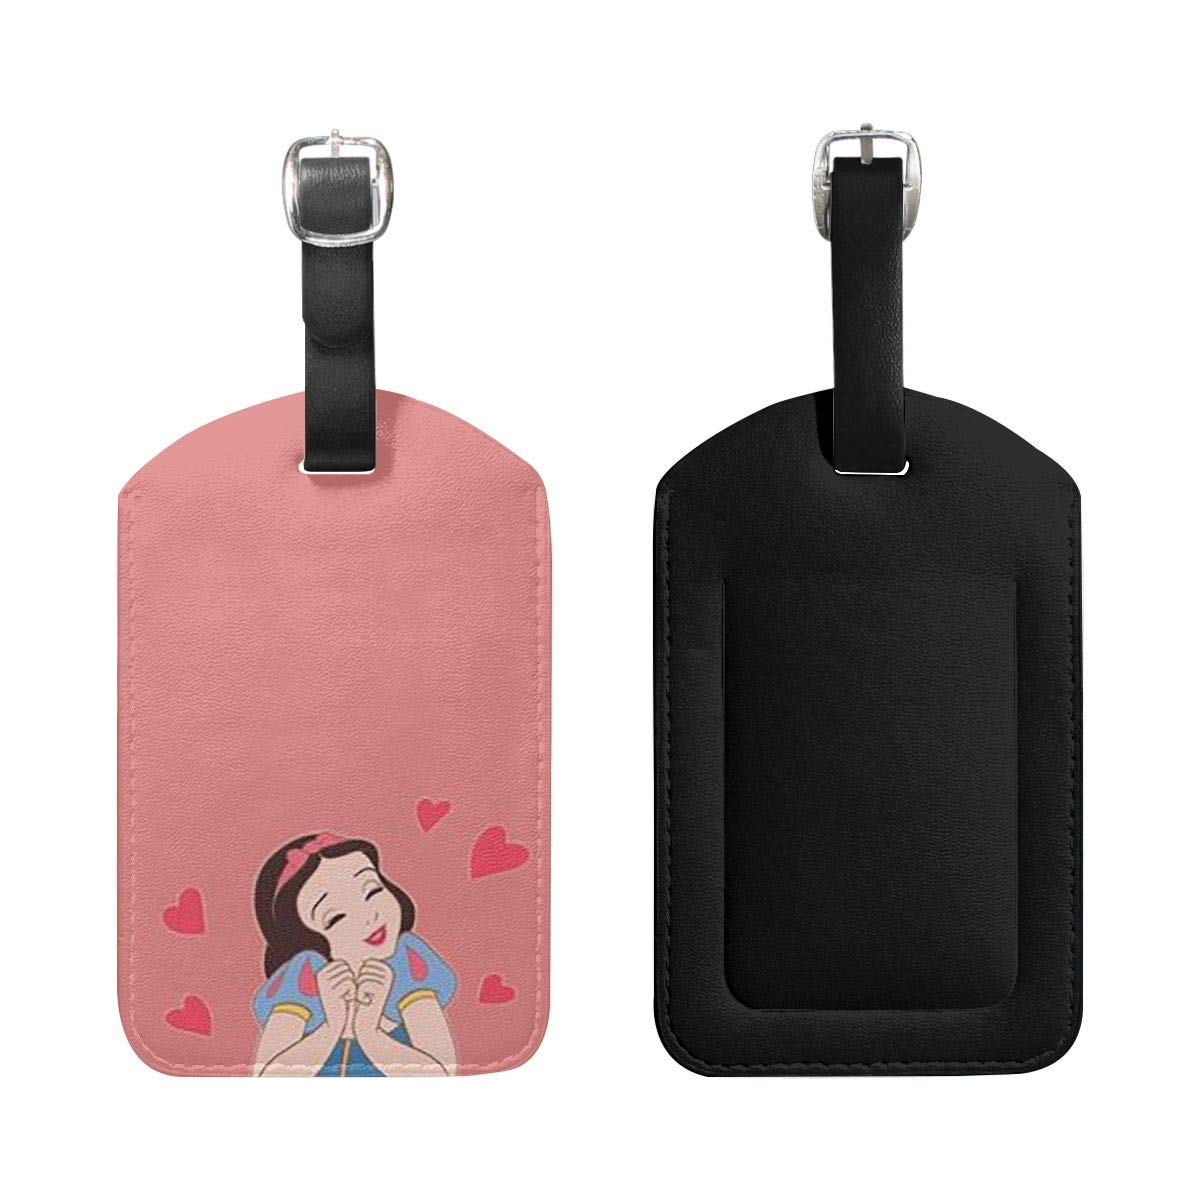 PU Leather Luggage Tags Snow White with Love Suitcase Labels Bag Adjustable Leather Strap Travel Accessories Set of 2